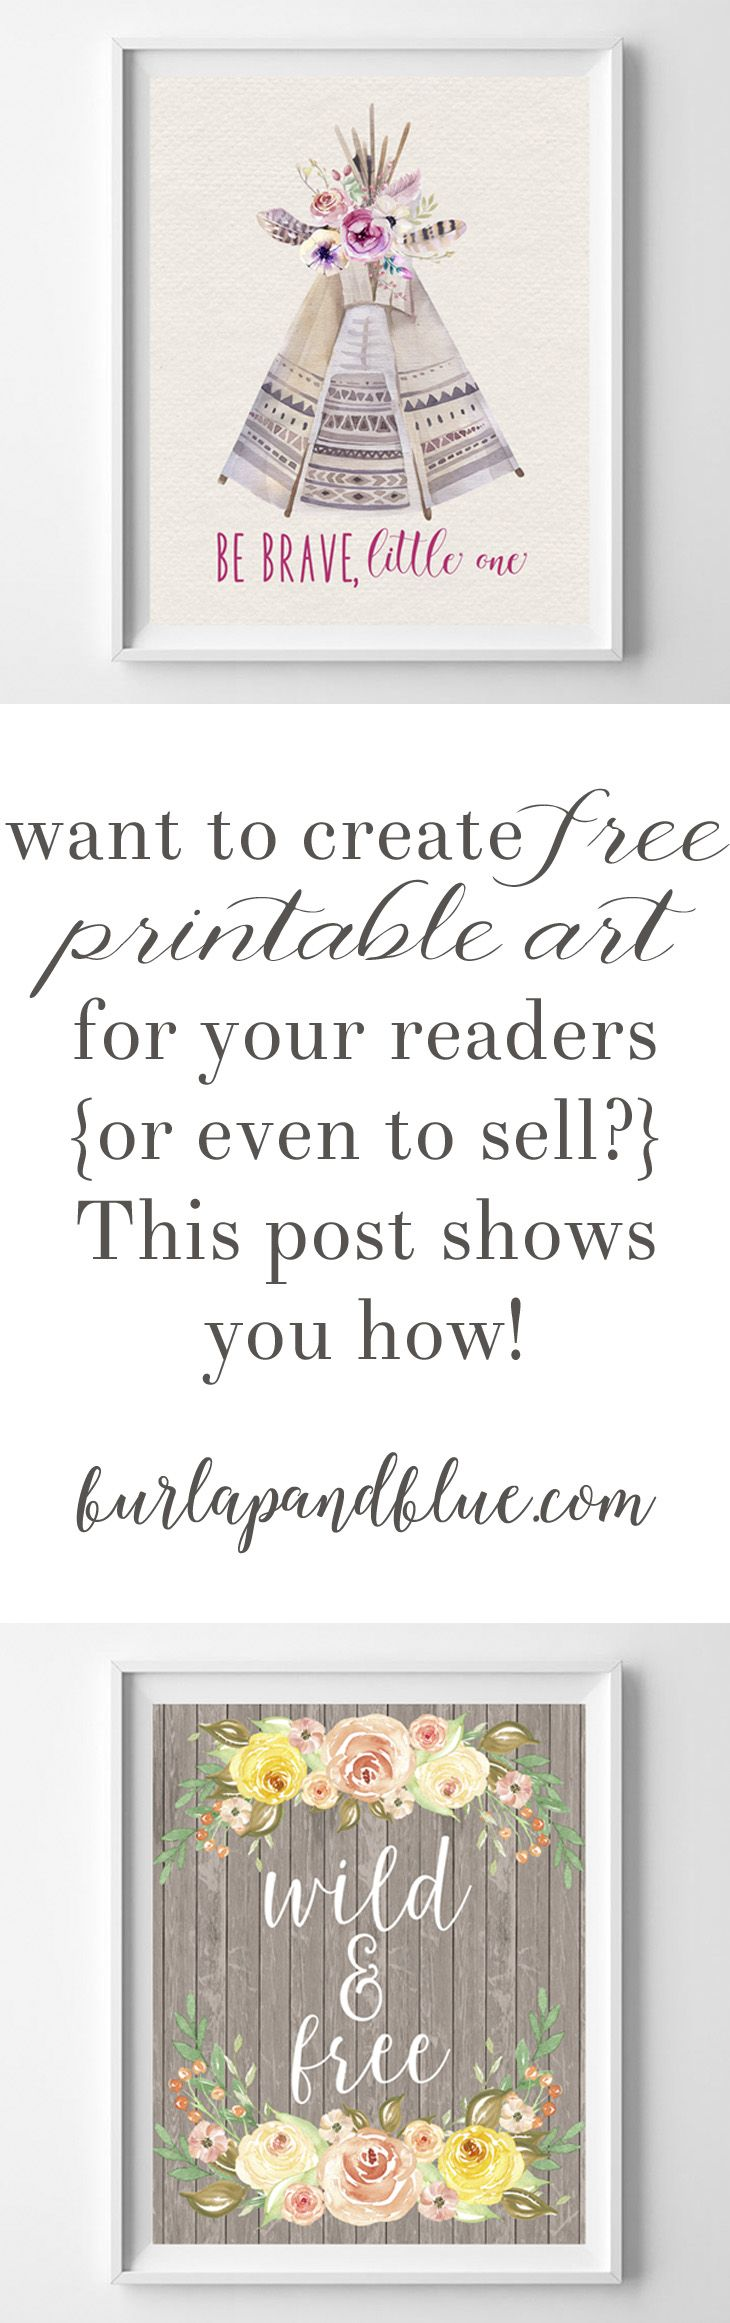 how to create free printables #craftstosell